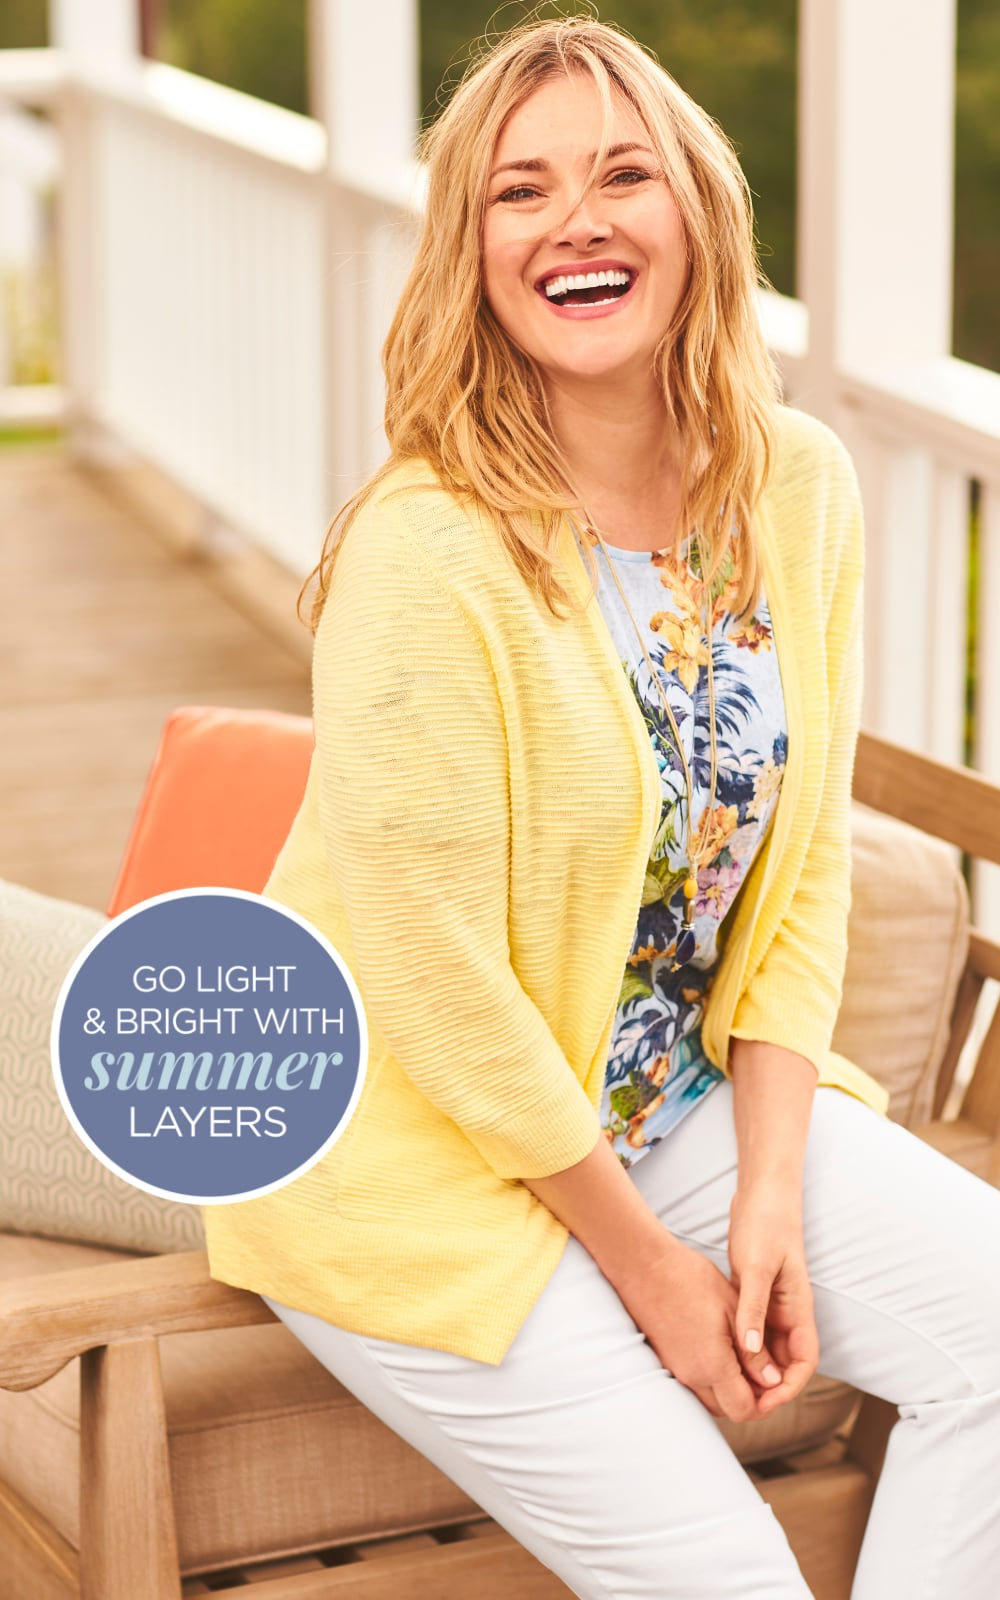 """Go Light & Bright with Summer Layers! Our """"Light and Bright"""" Outfit featuring a Tropical Floral Tee, a Textured Yarn Solid Cardigan Sweater, and a Signature Slimming Ankle Jean."""